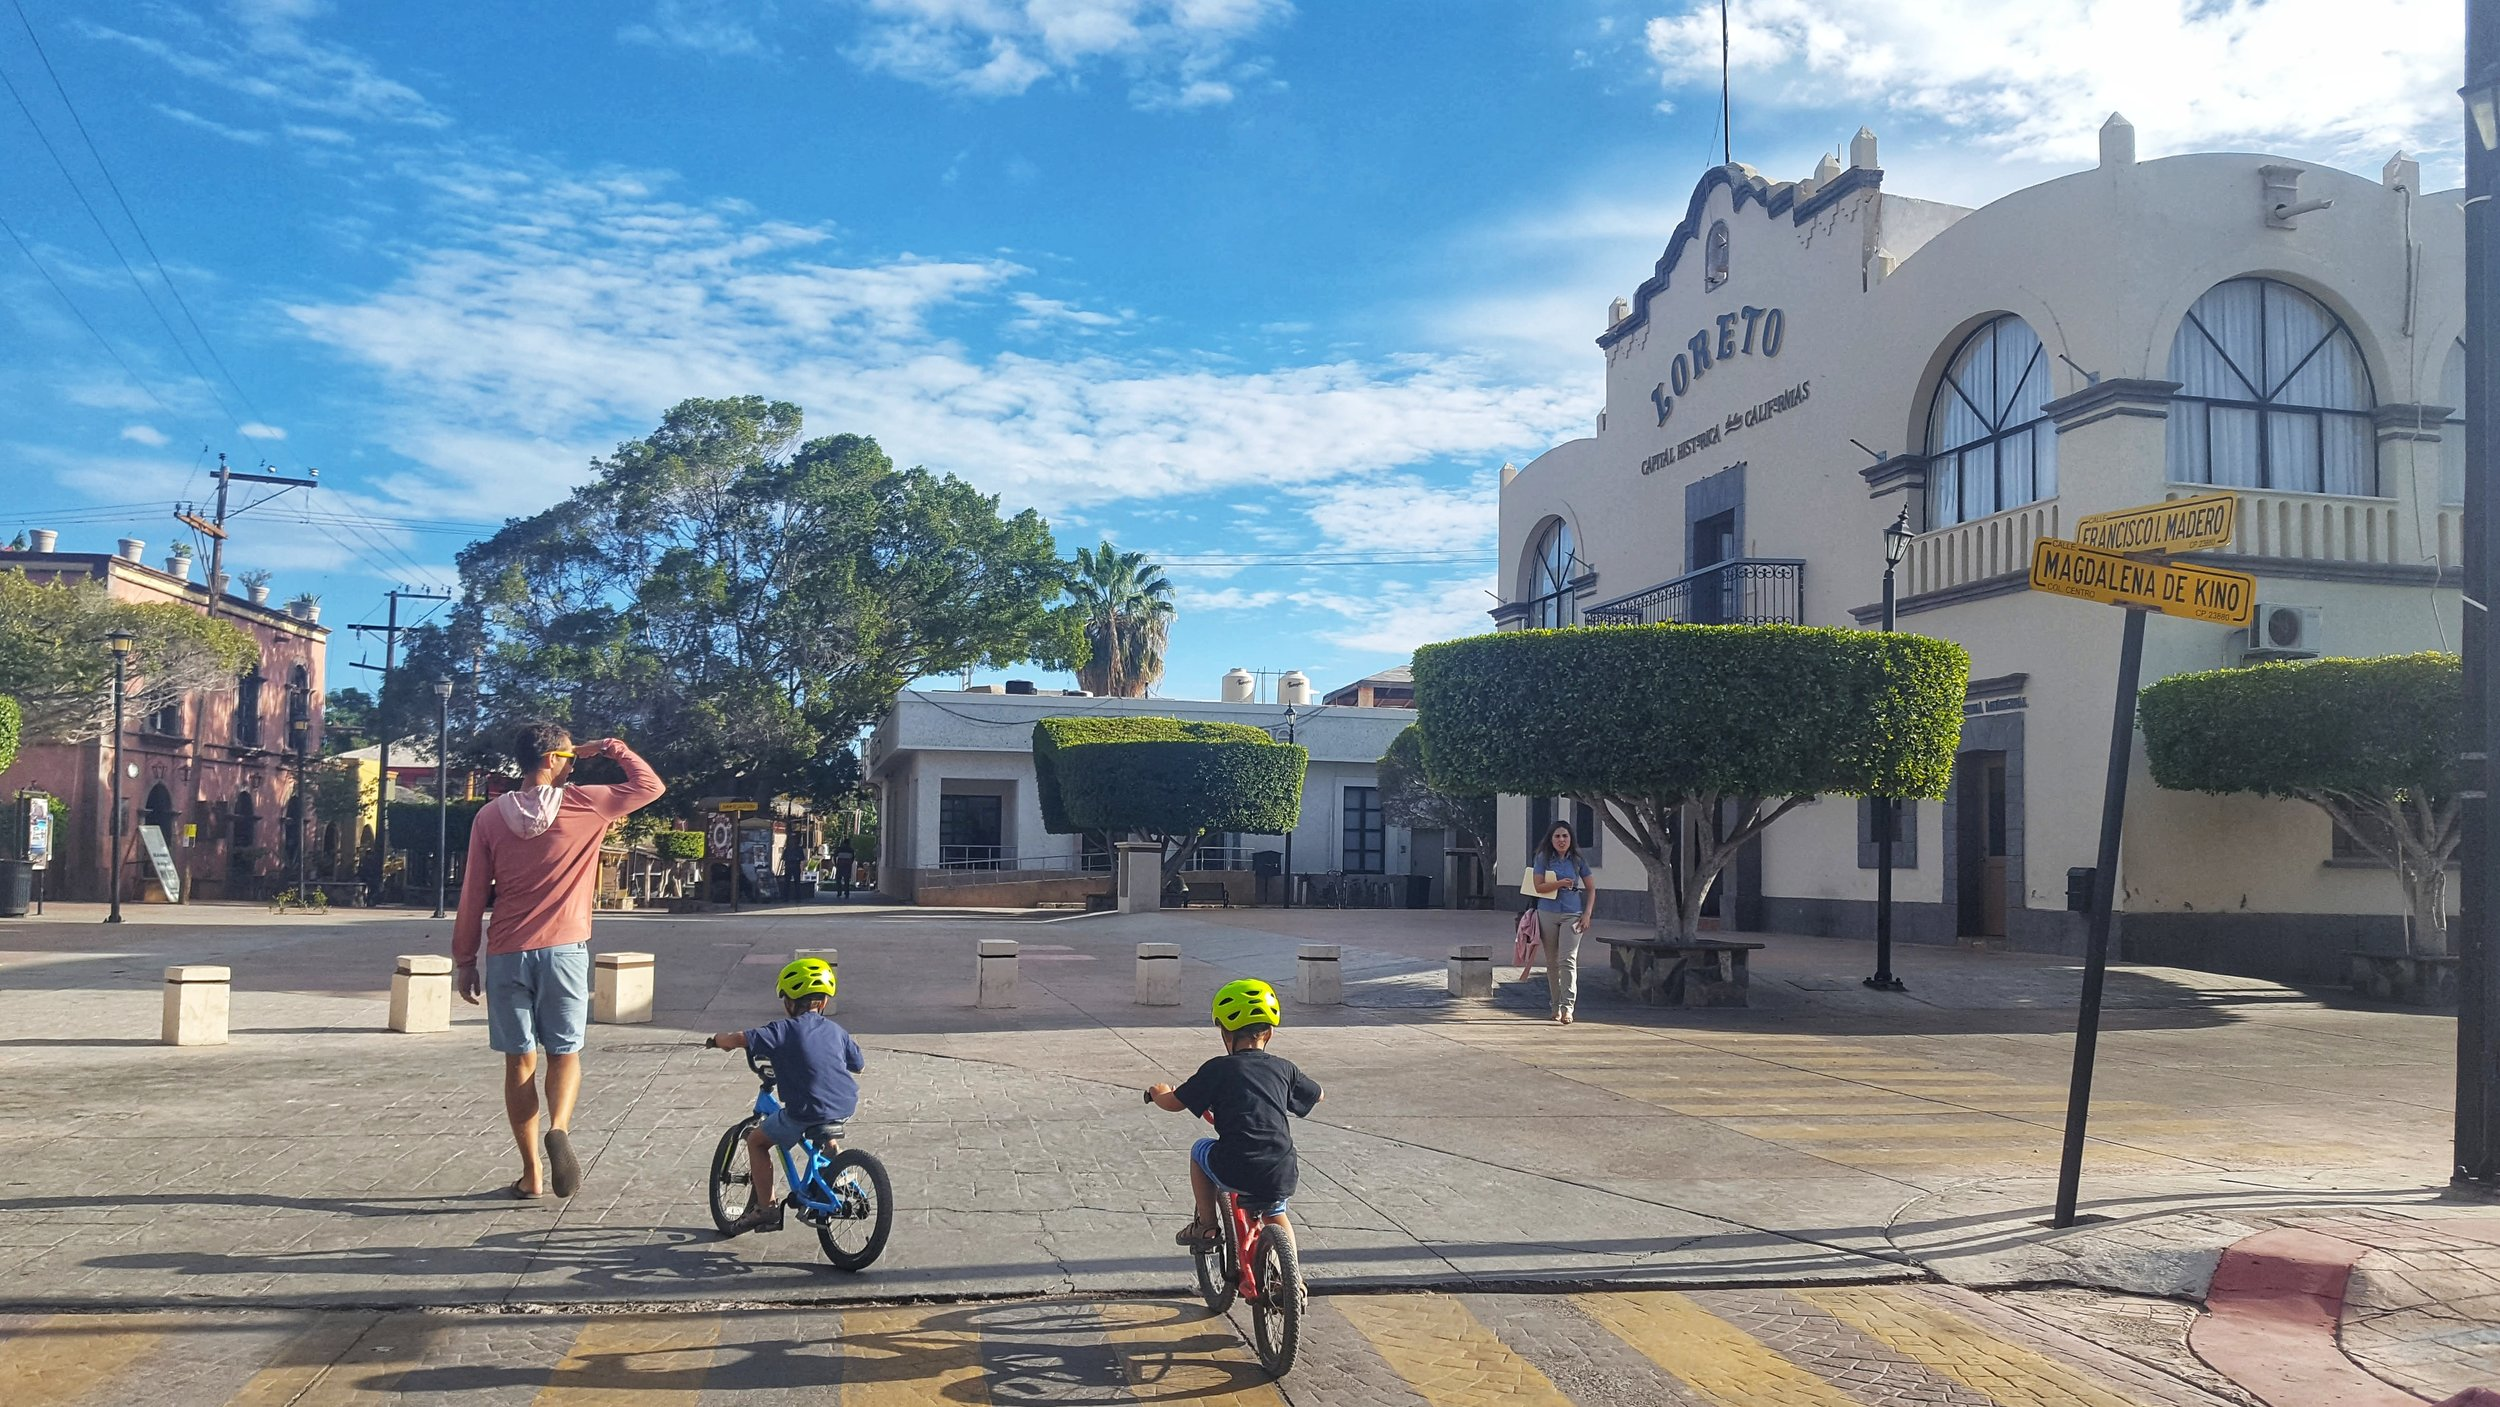 Our first glimpse at the charming historical center of Loreto - only a five minute bike from our campground.